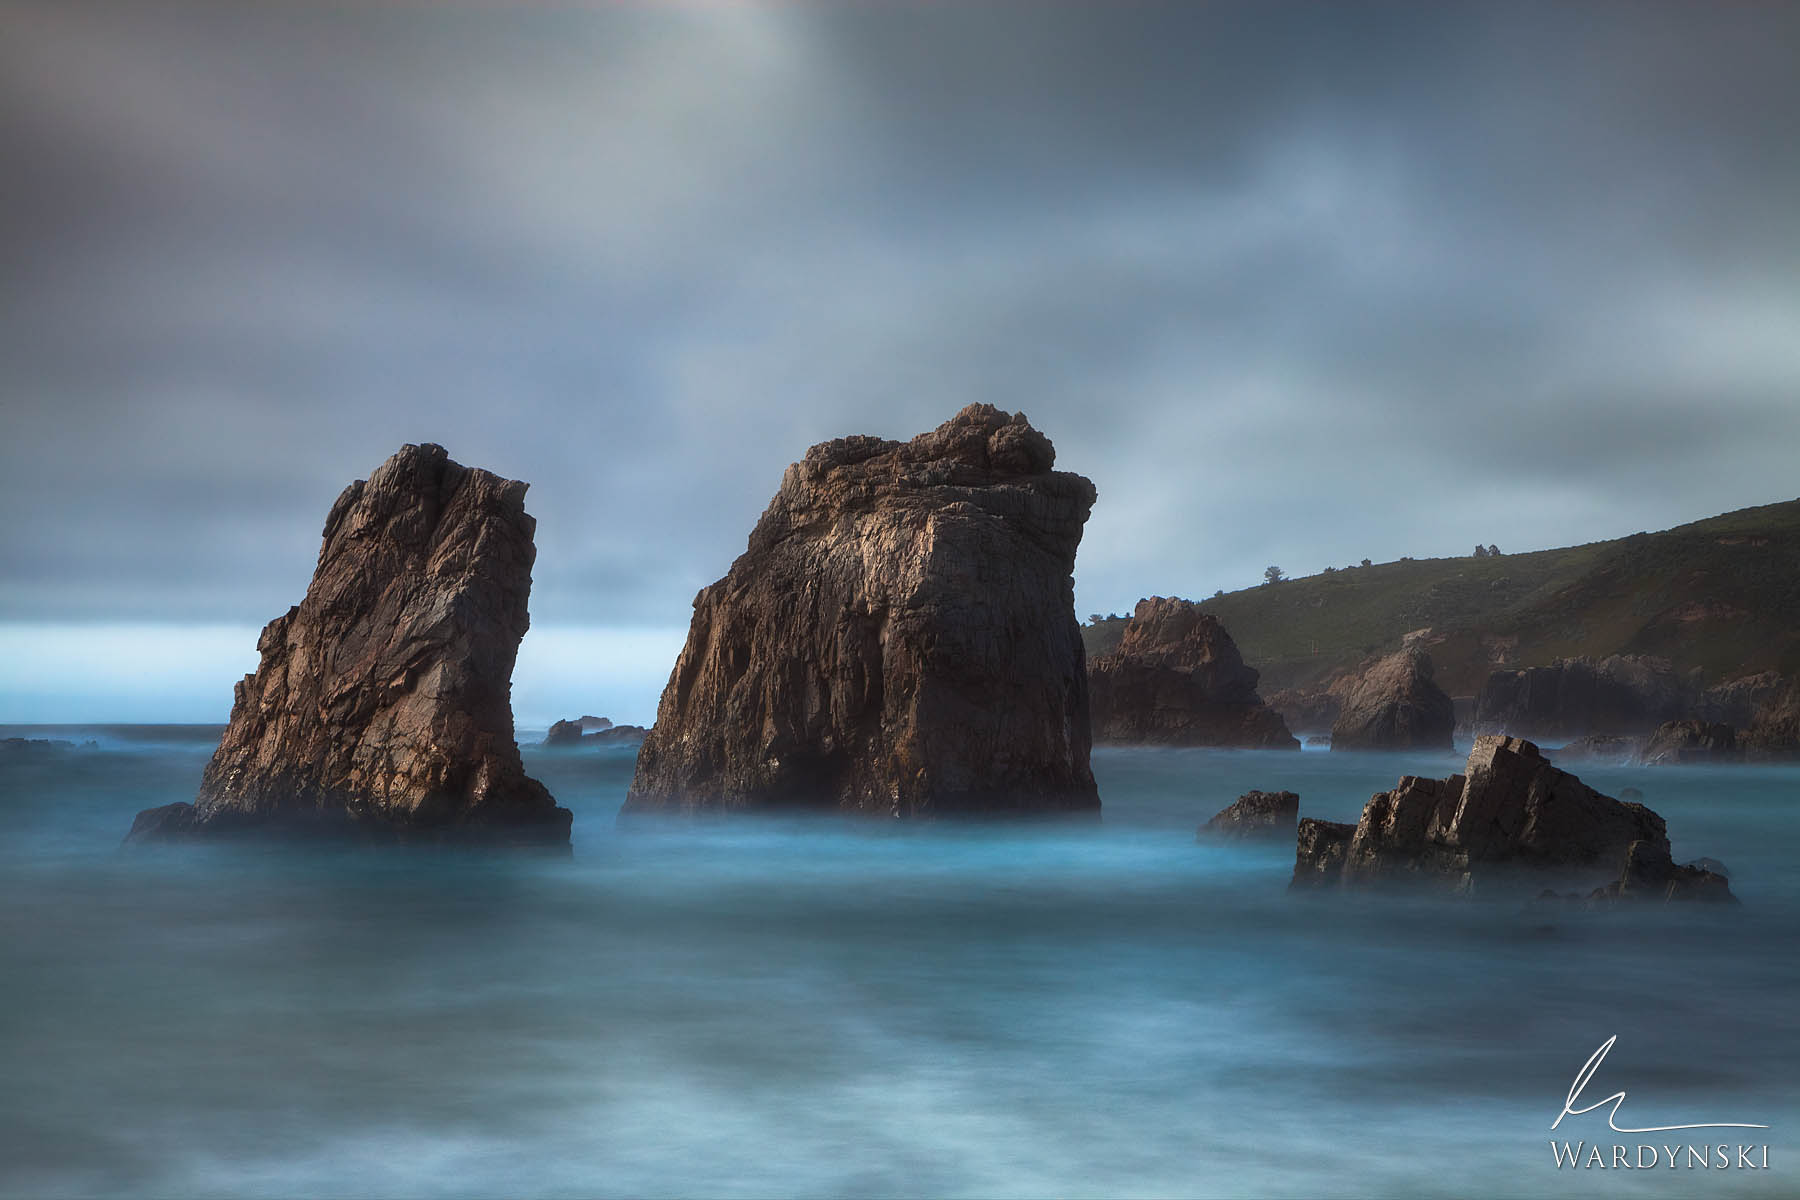 Fine Art Print | Limited Edition of 100  Like an old couple who've spent their entire lives together, these two rocks have experienced...